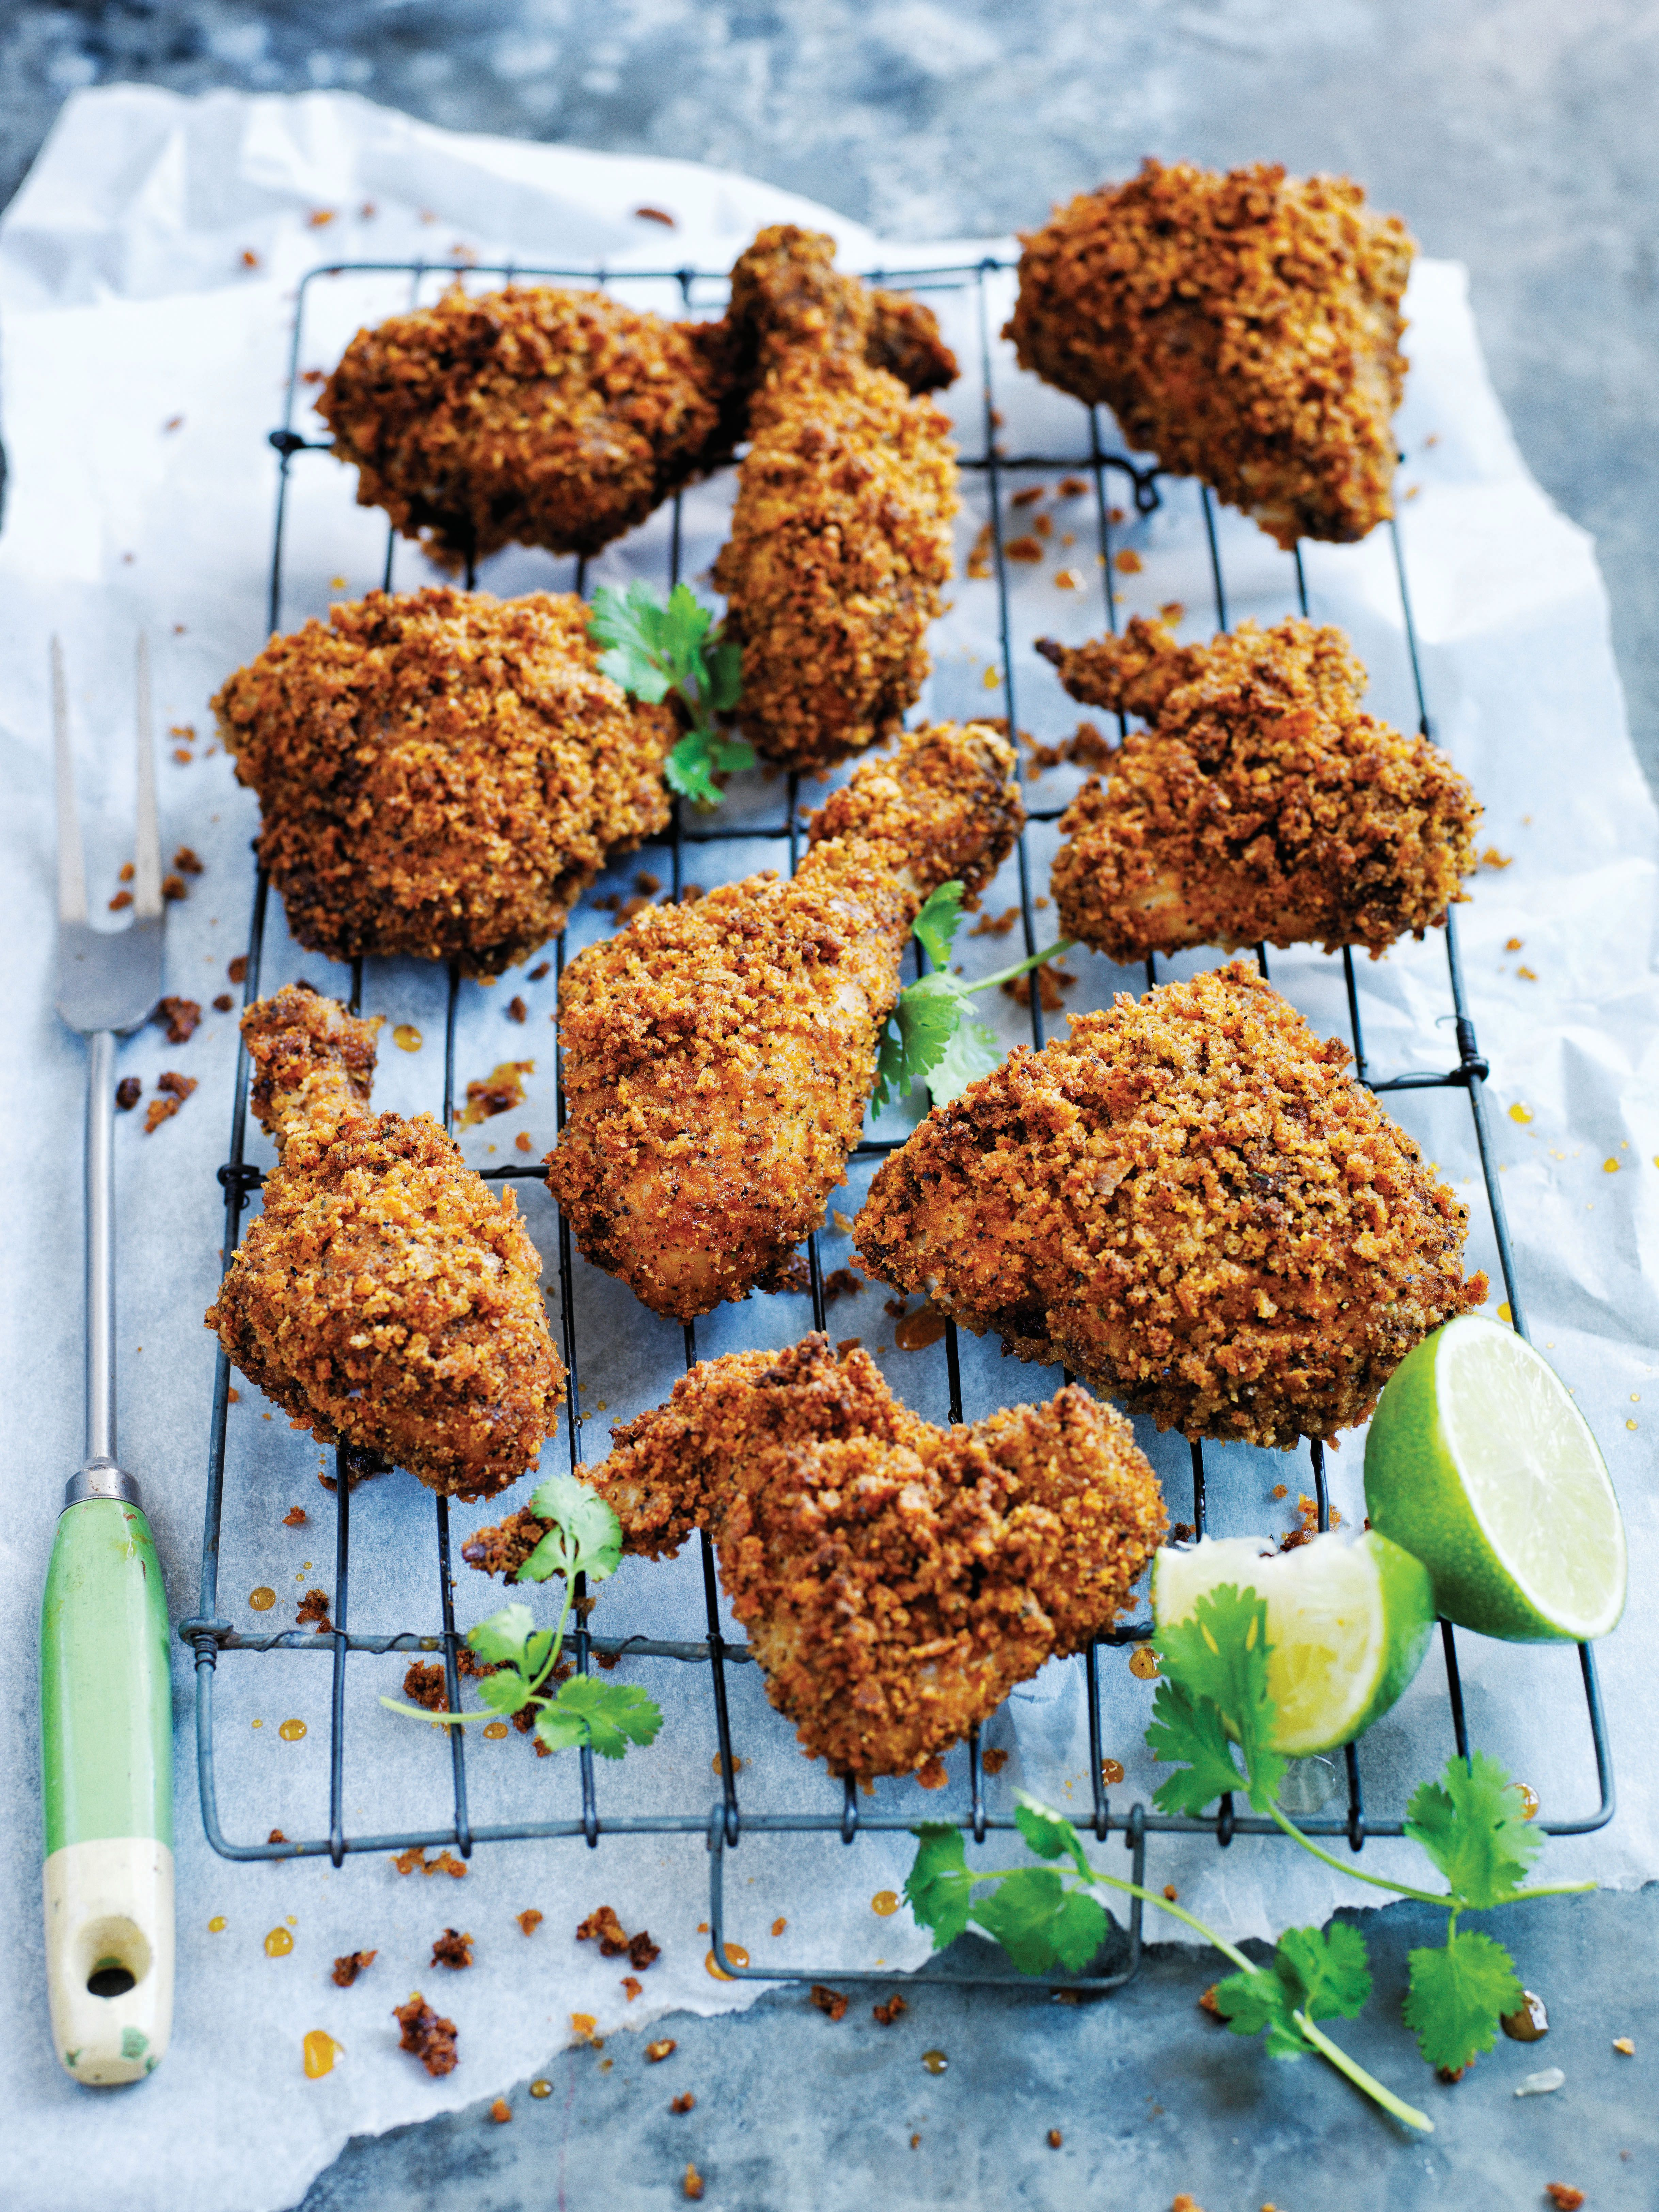 Crunchy cajun chicken pieces woolworths jamieoliver recipe crunchy cajun chicken pieces woolworths jamieoliver recipe cajun chicken http forumfinder Images